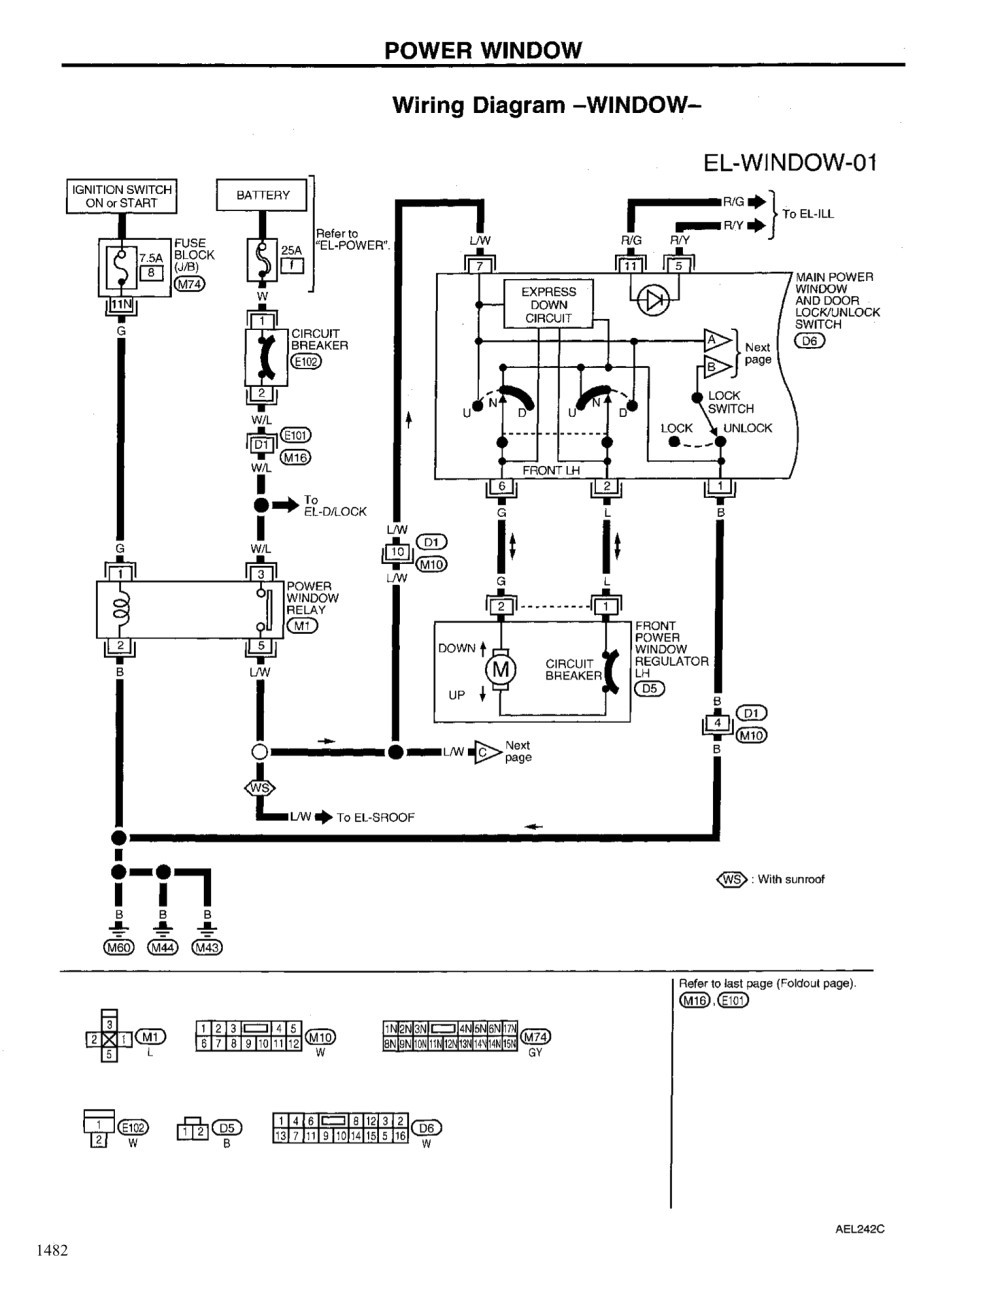 power window wiring diagram unique nissan altima wiring diagrams of power window wiring diagram power window wiring diagram vt wiring library